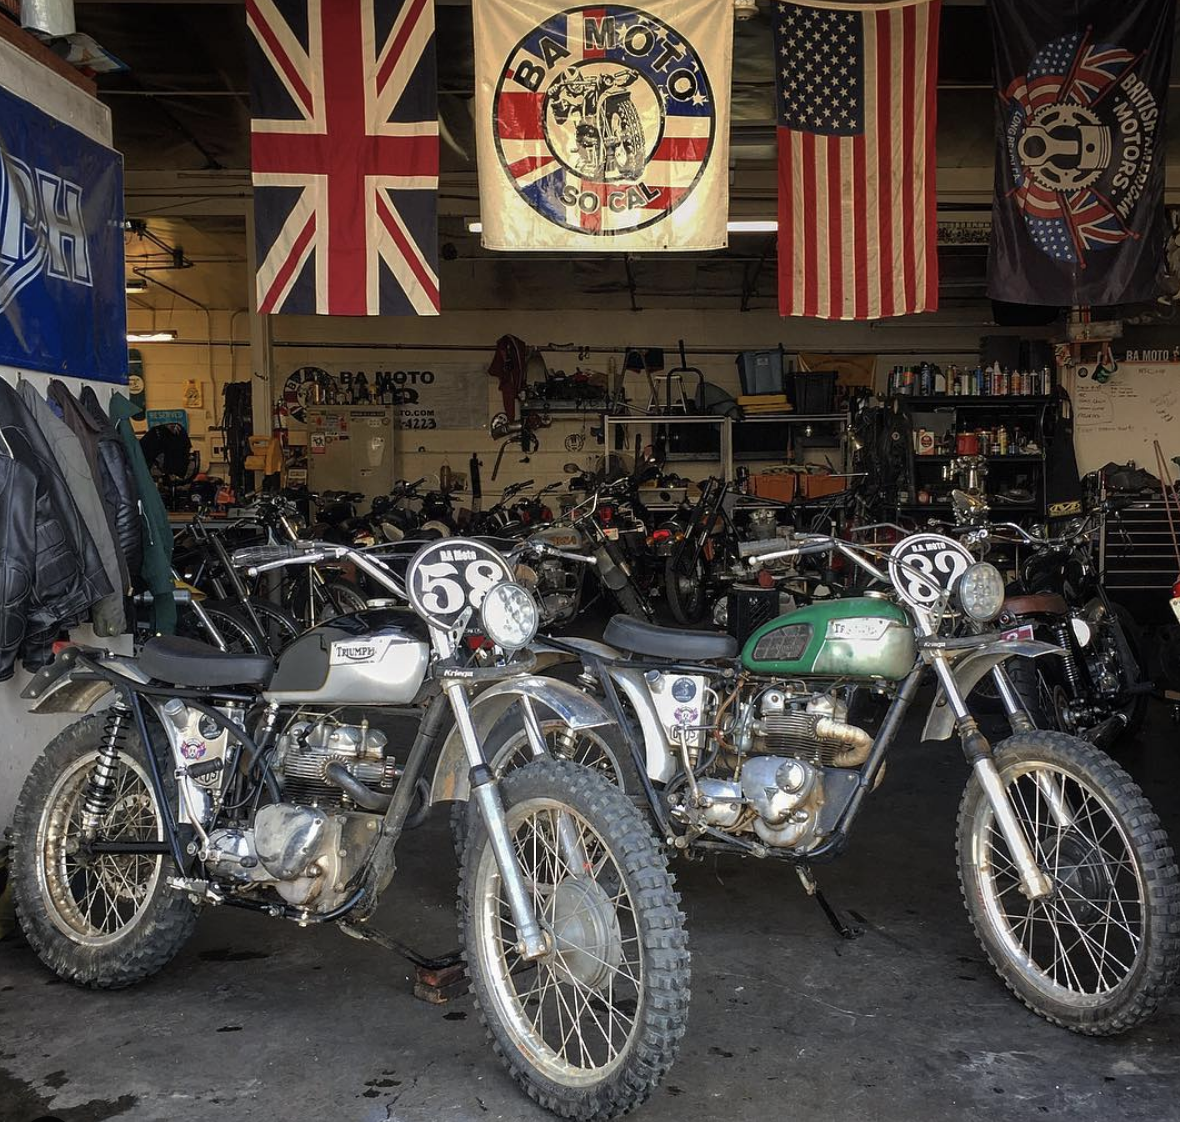 BA MOTO : Modern & Vintage British Motorcycle Shop Established in 2006